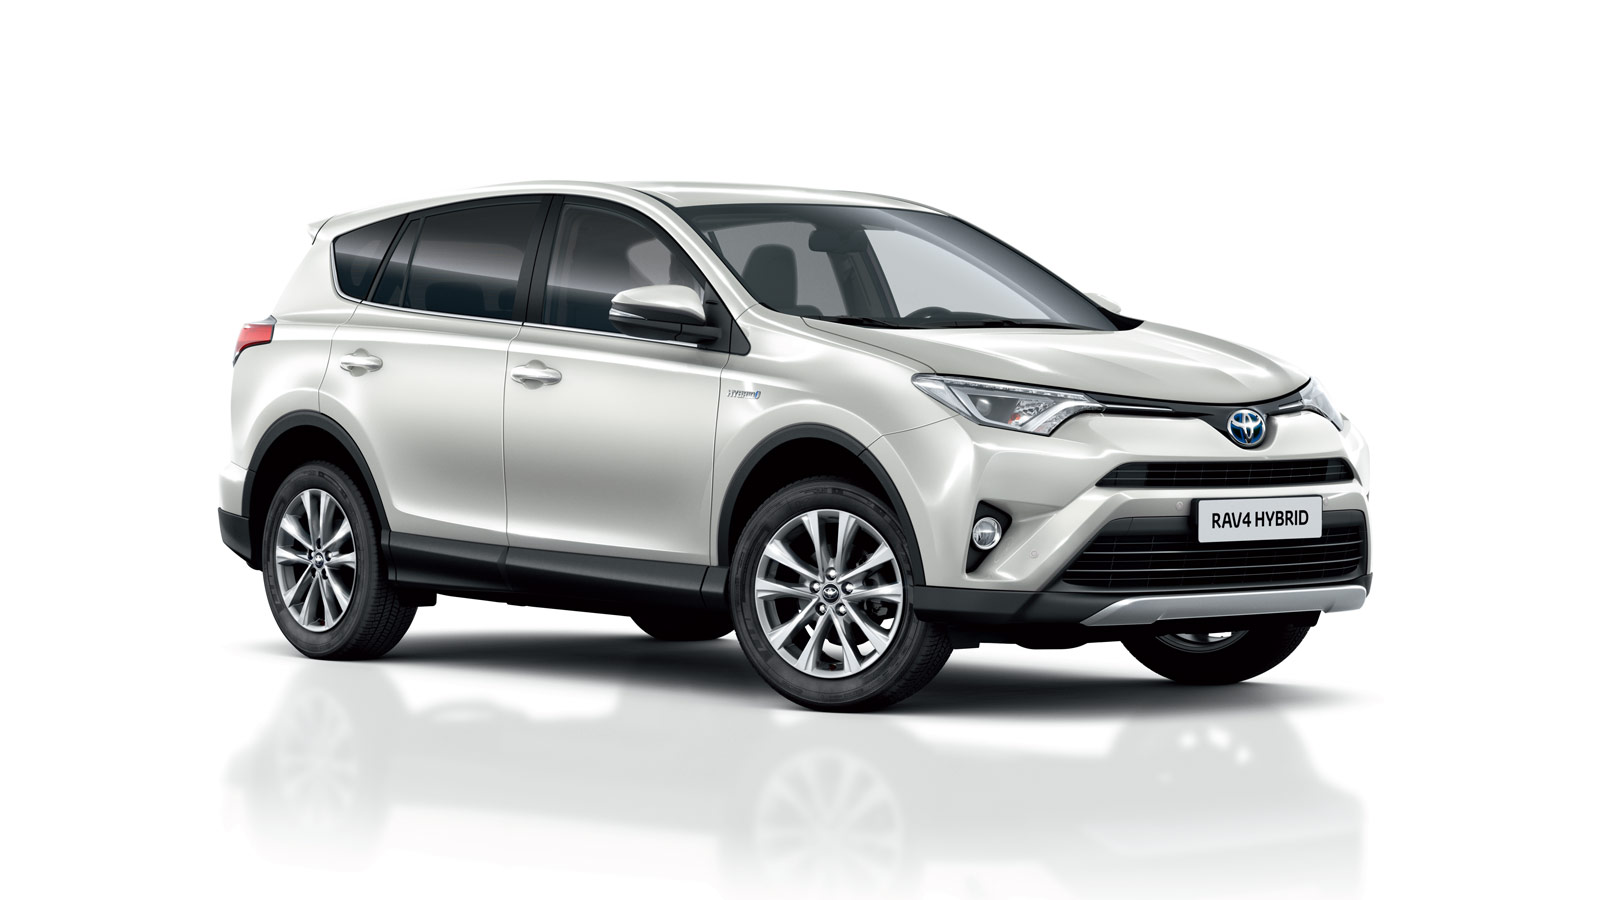 new rav4 hybrid models features hodgson toyota gateshead. Black Bedroom Furniture Sets. Home Design Ideas